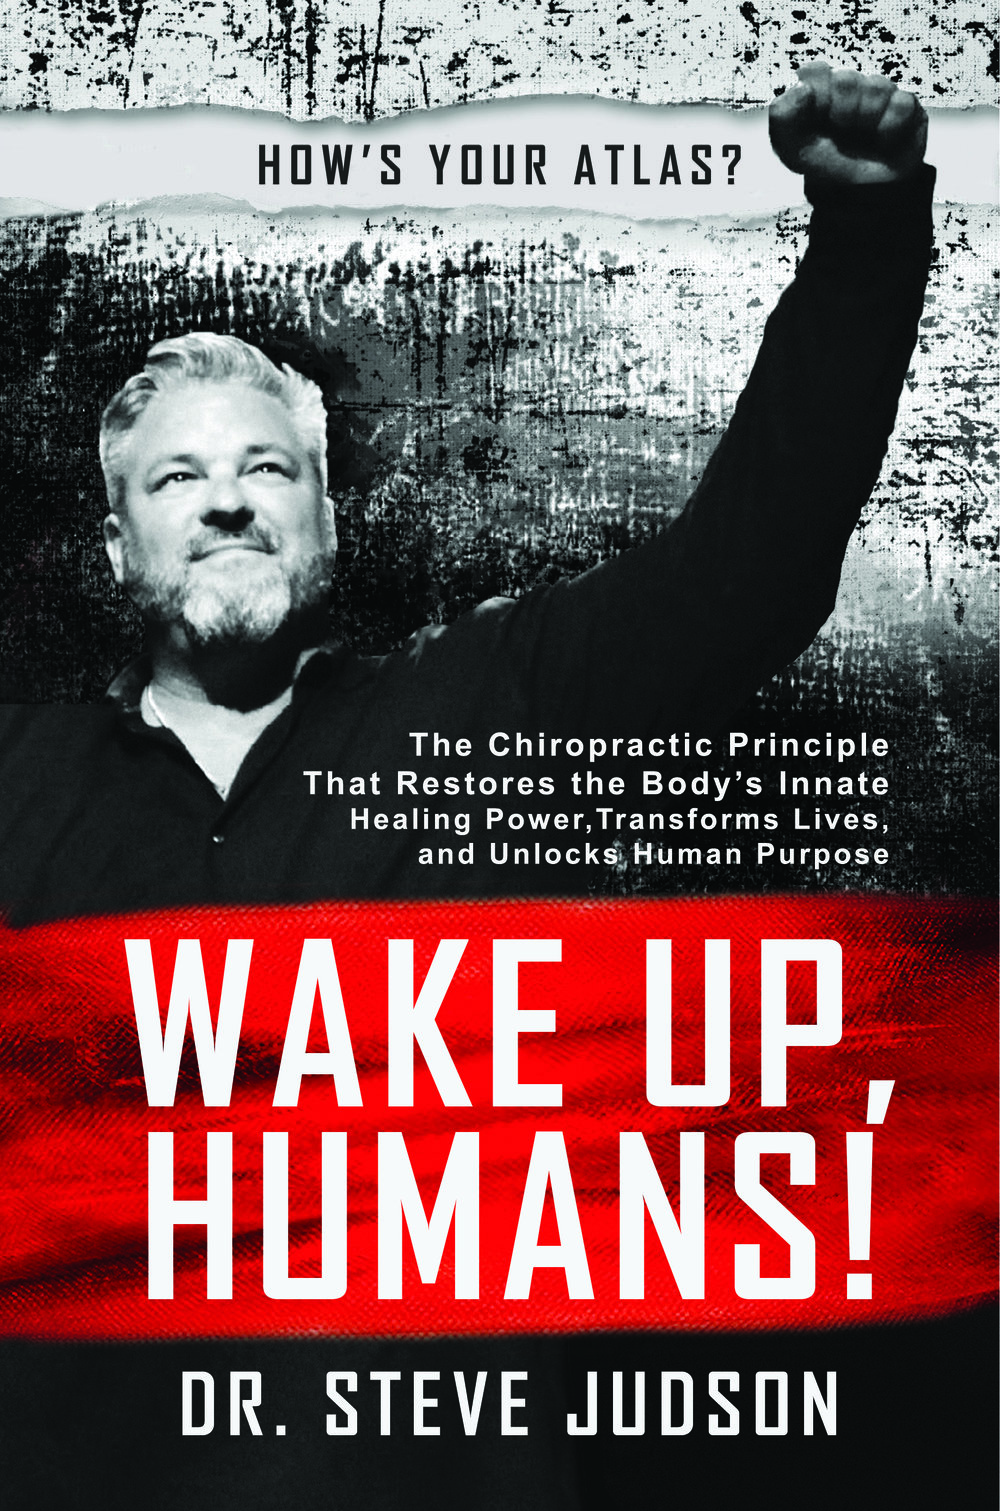 Wake Up, Humans(Book)_front_CMYK version.jpg